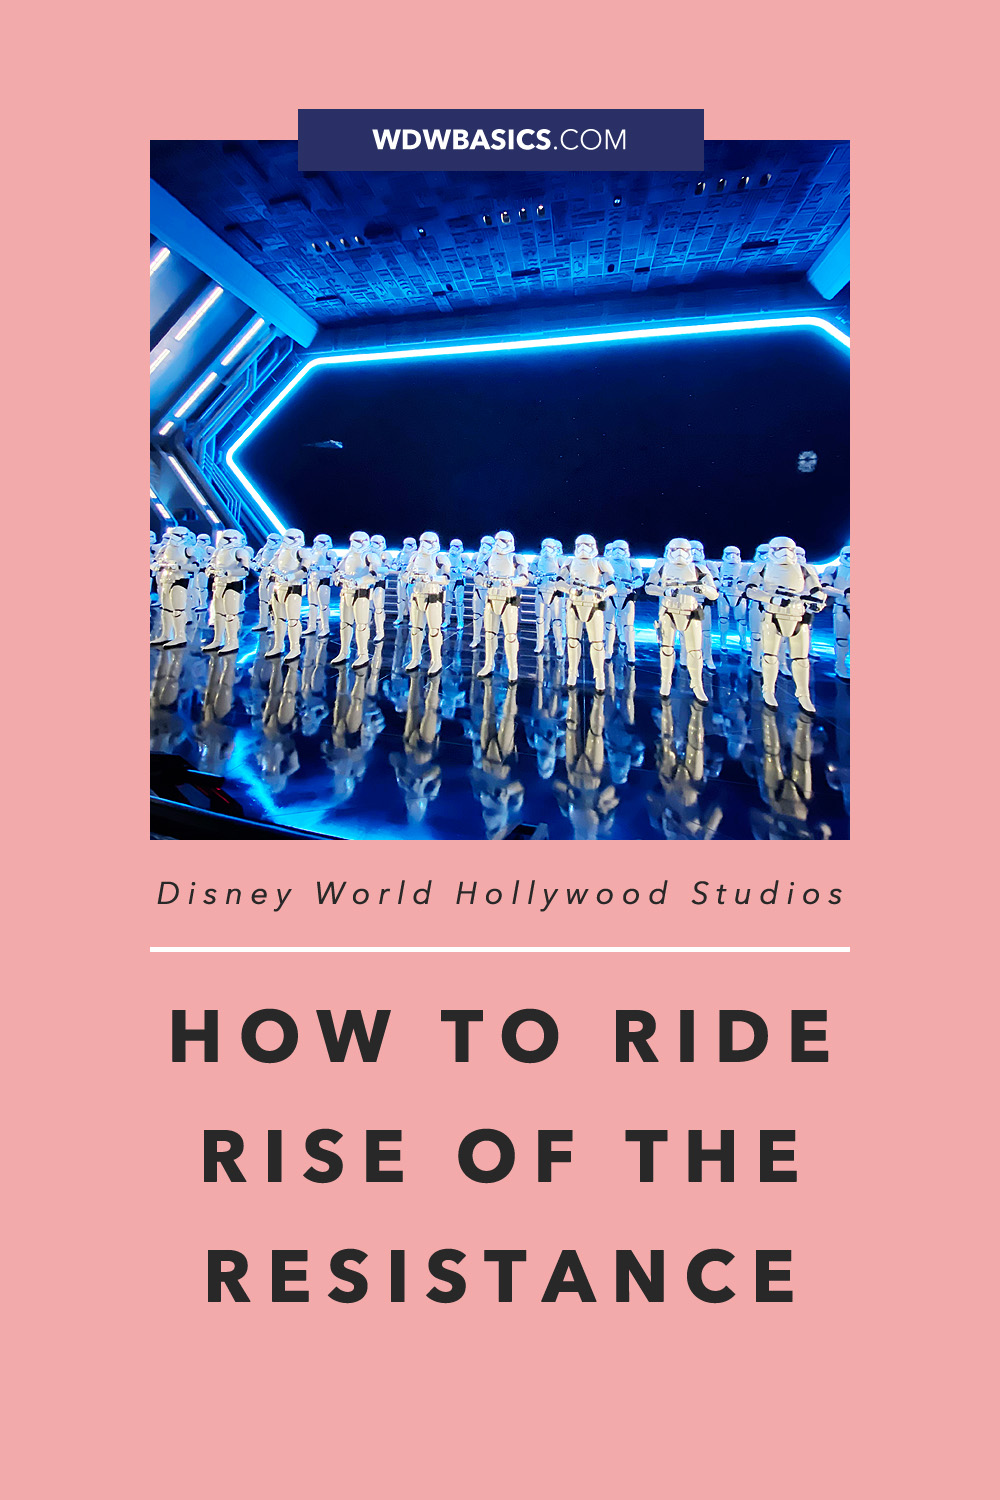 How to Ride Rise of the Resistance